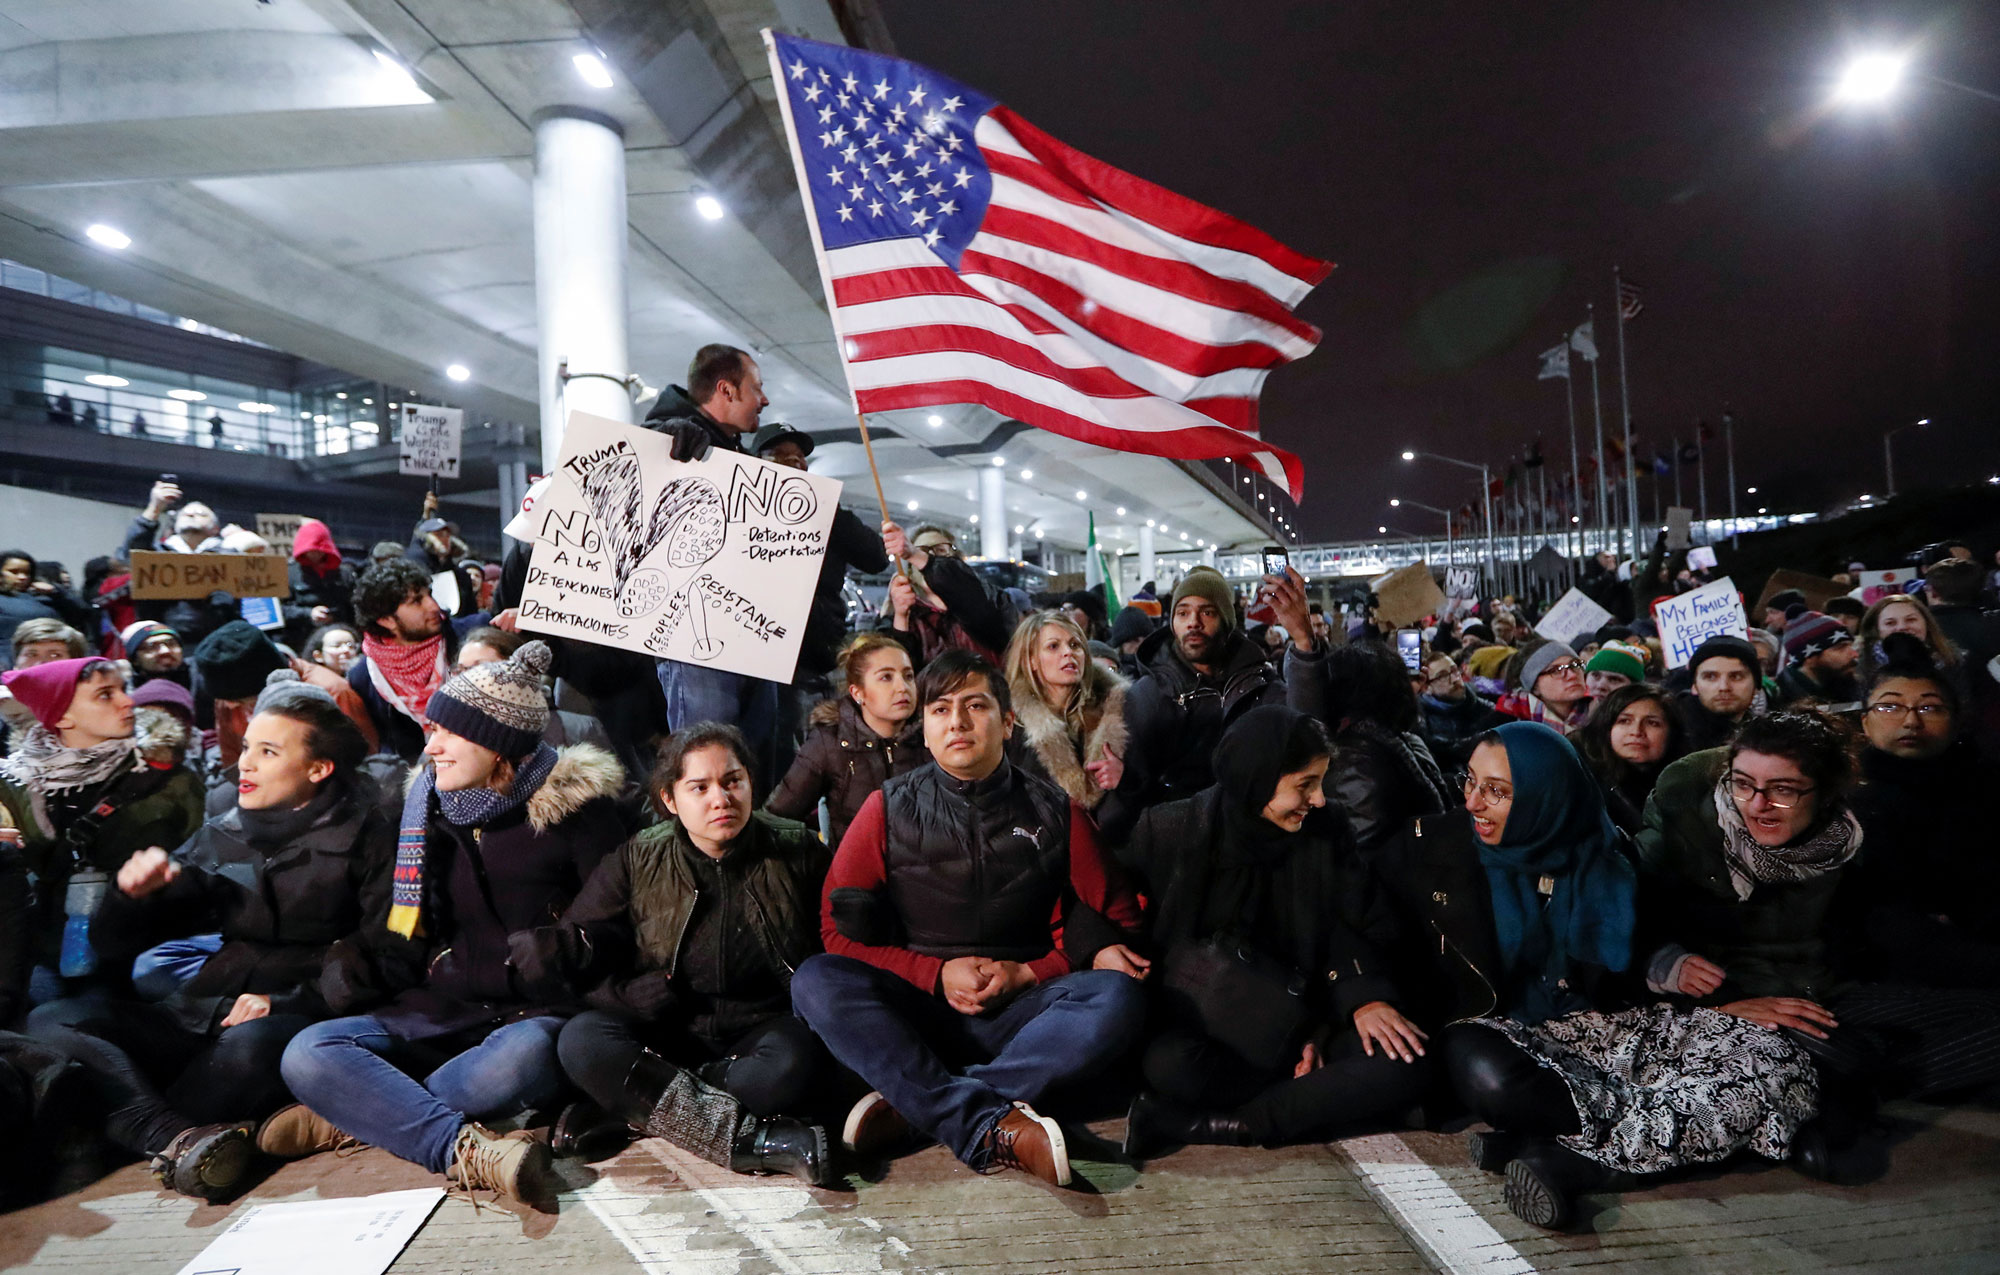 People gather to protest against the travel ban imposed by President Donald Trump's executive order, at O'Hare airport in Chicago.